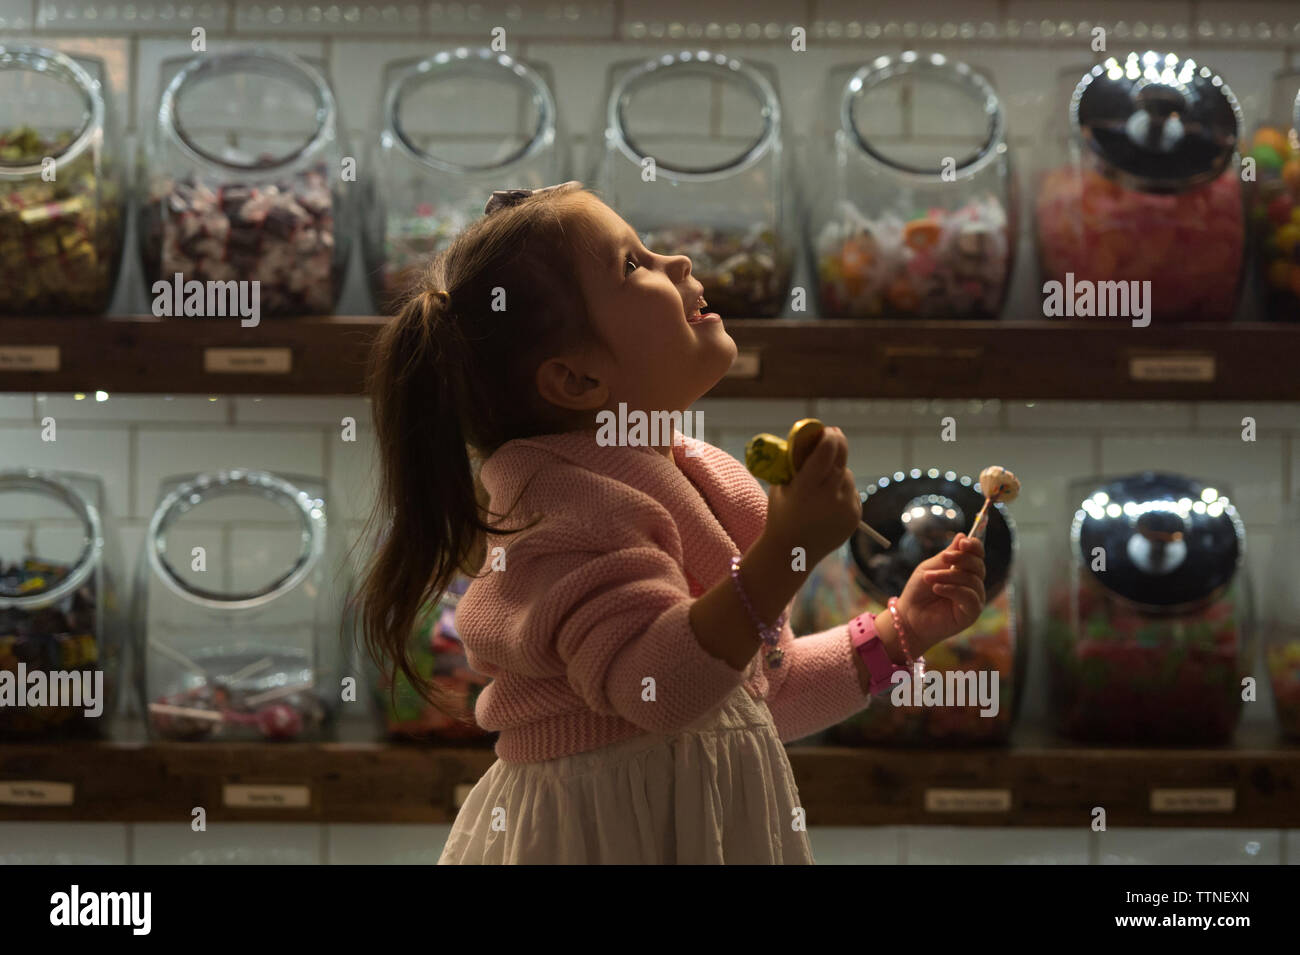 Side view of happy girl holding candies while standing in shop Stock Photo